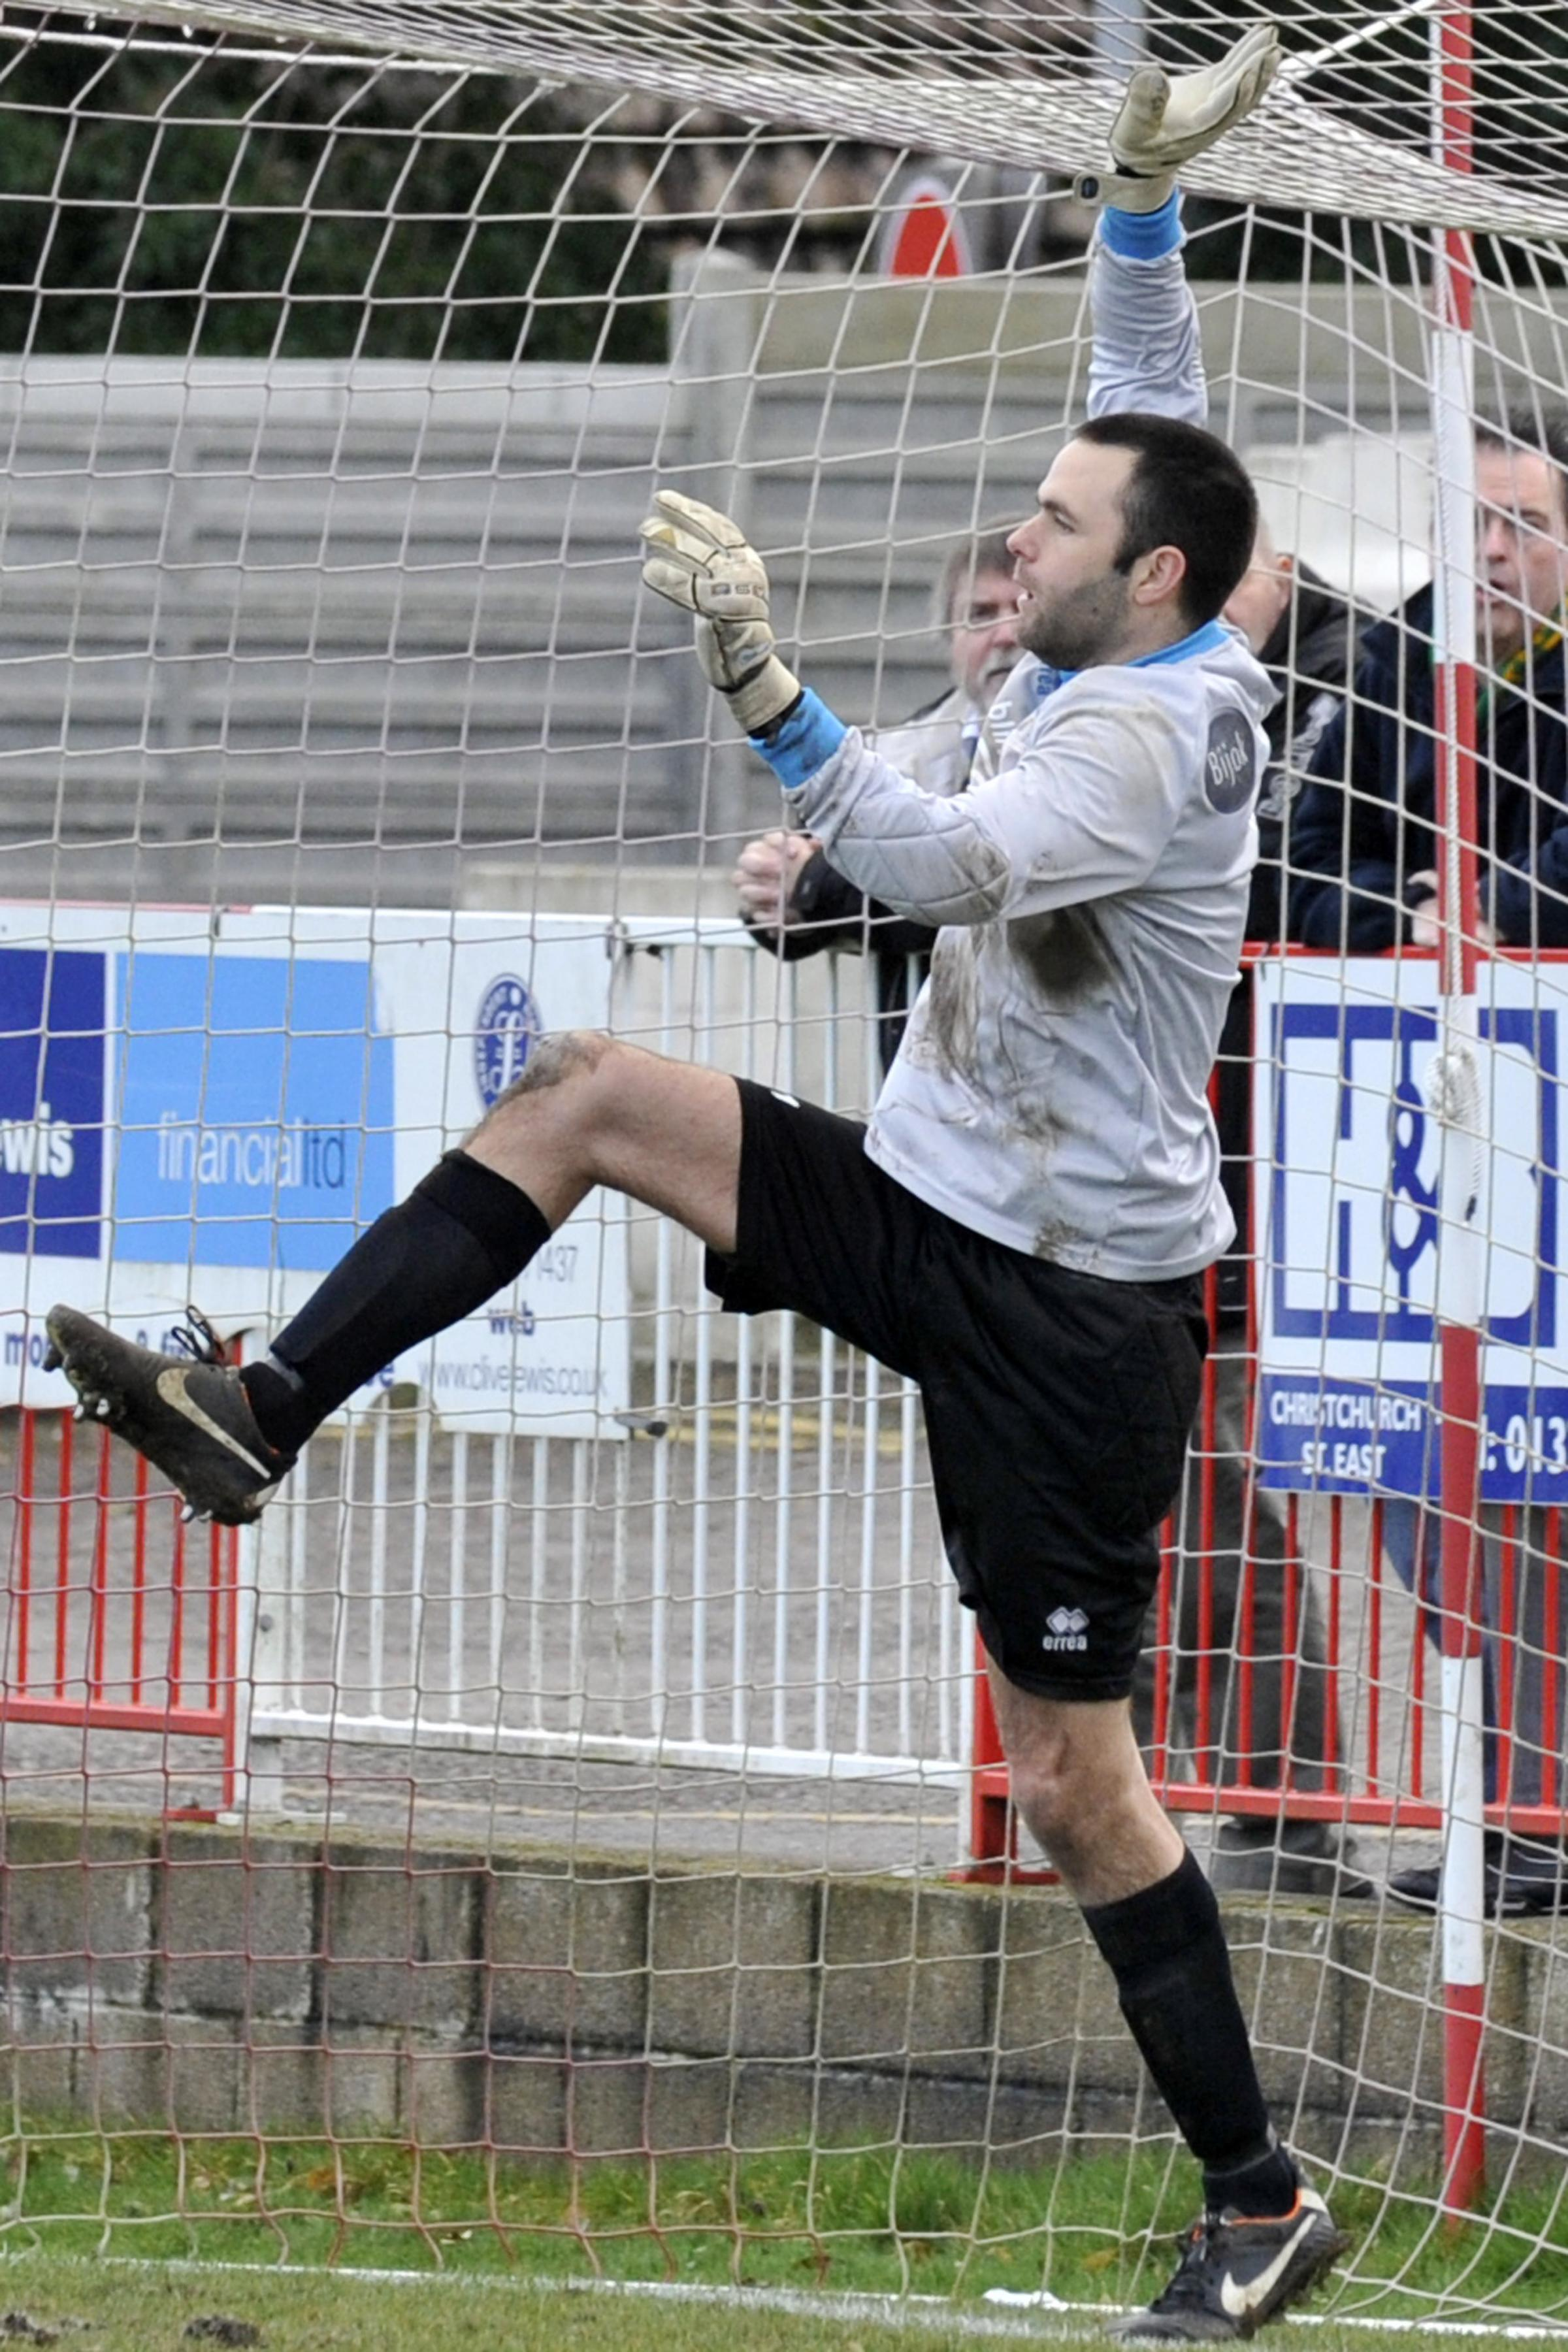 Darren Chitty kept a clean sheet for Frome